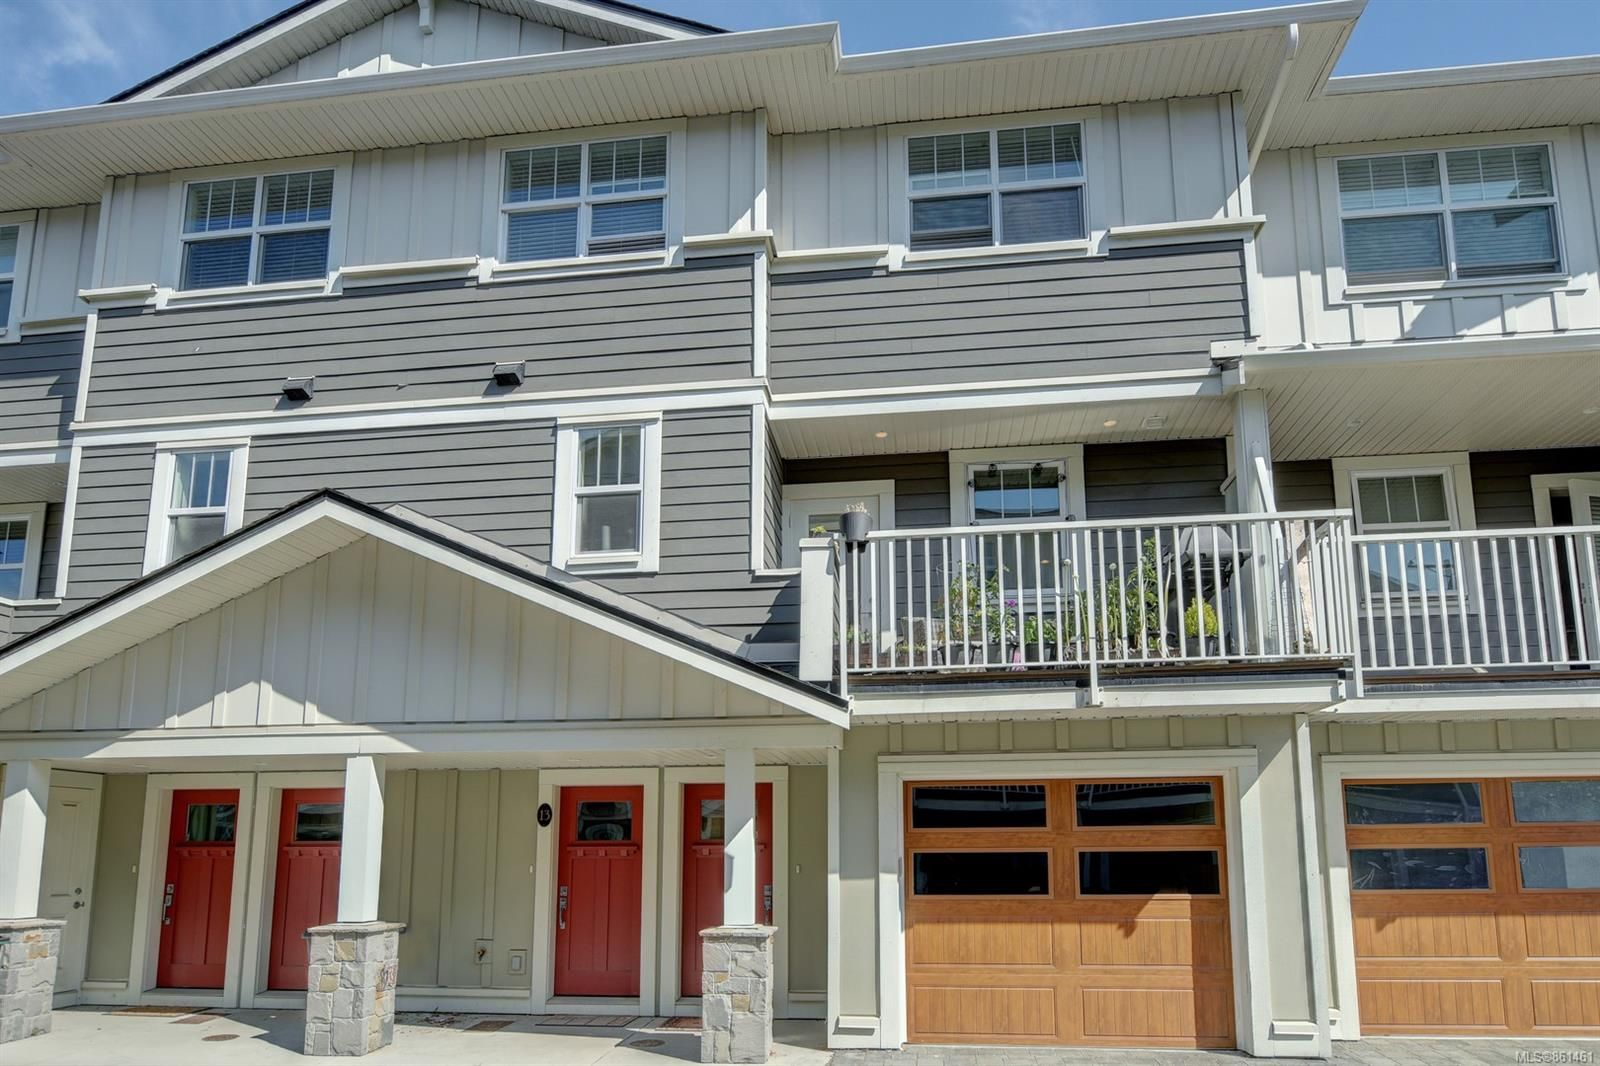 Main Photo: 13 3356 Whittier Ave in : SW Rudd Park Row/Townhouse for sale (Saanich West)  : MLS®# 861461